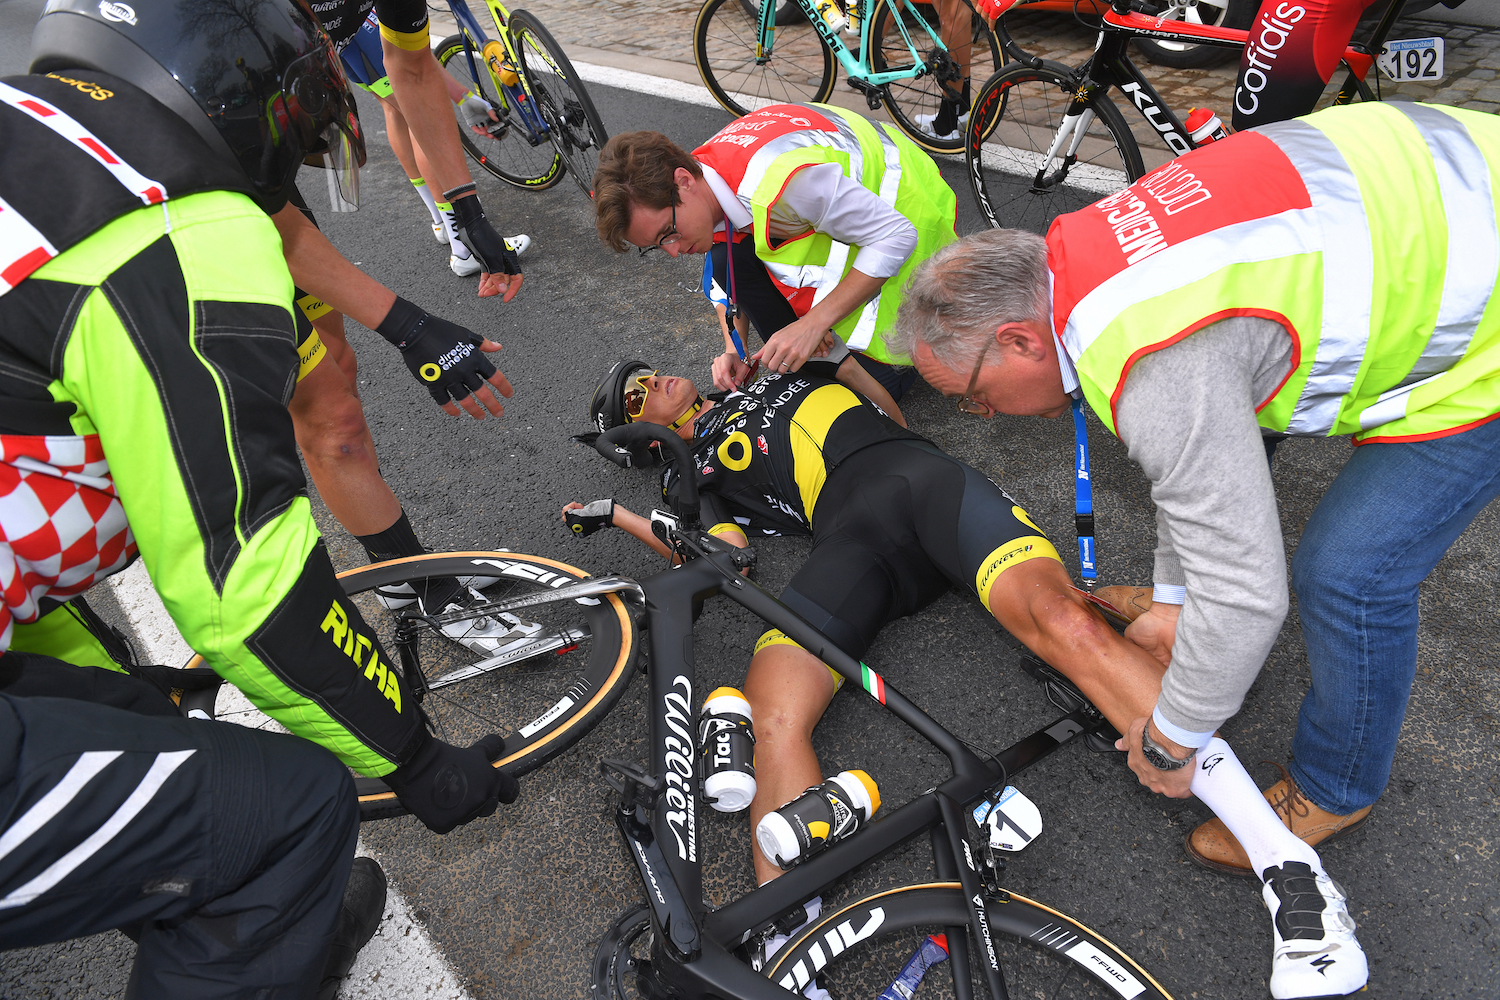 Reigning champion Niki Terpstra crashes out of Tour of Flanders 2019